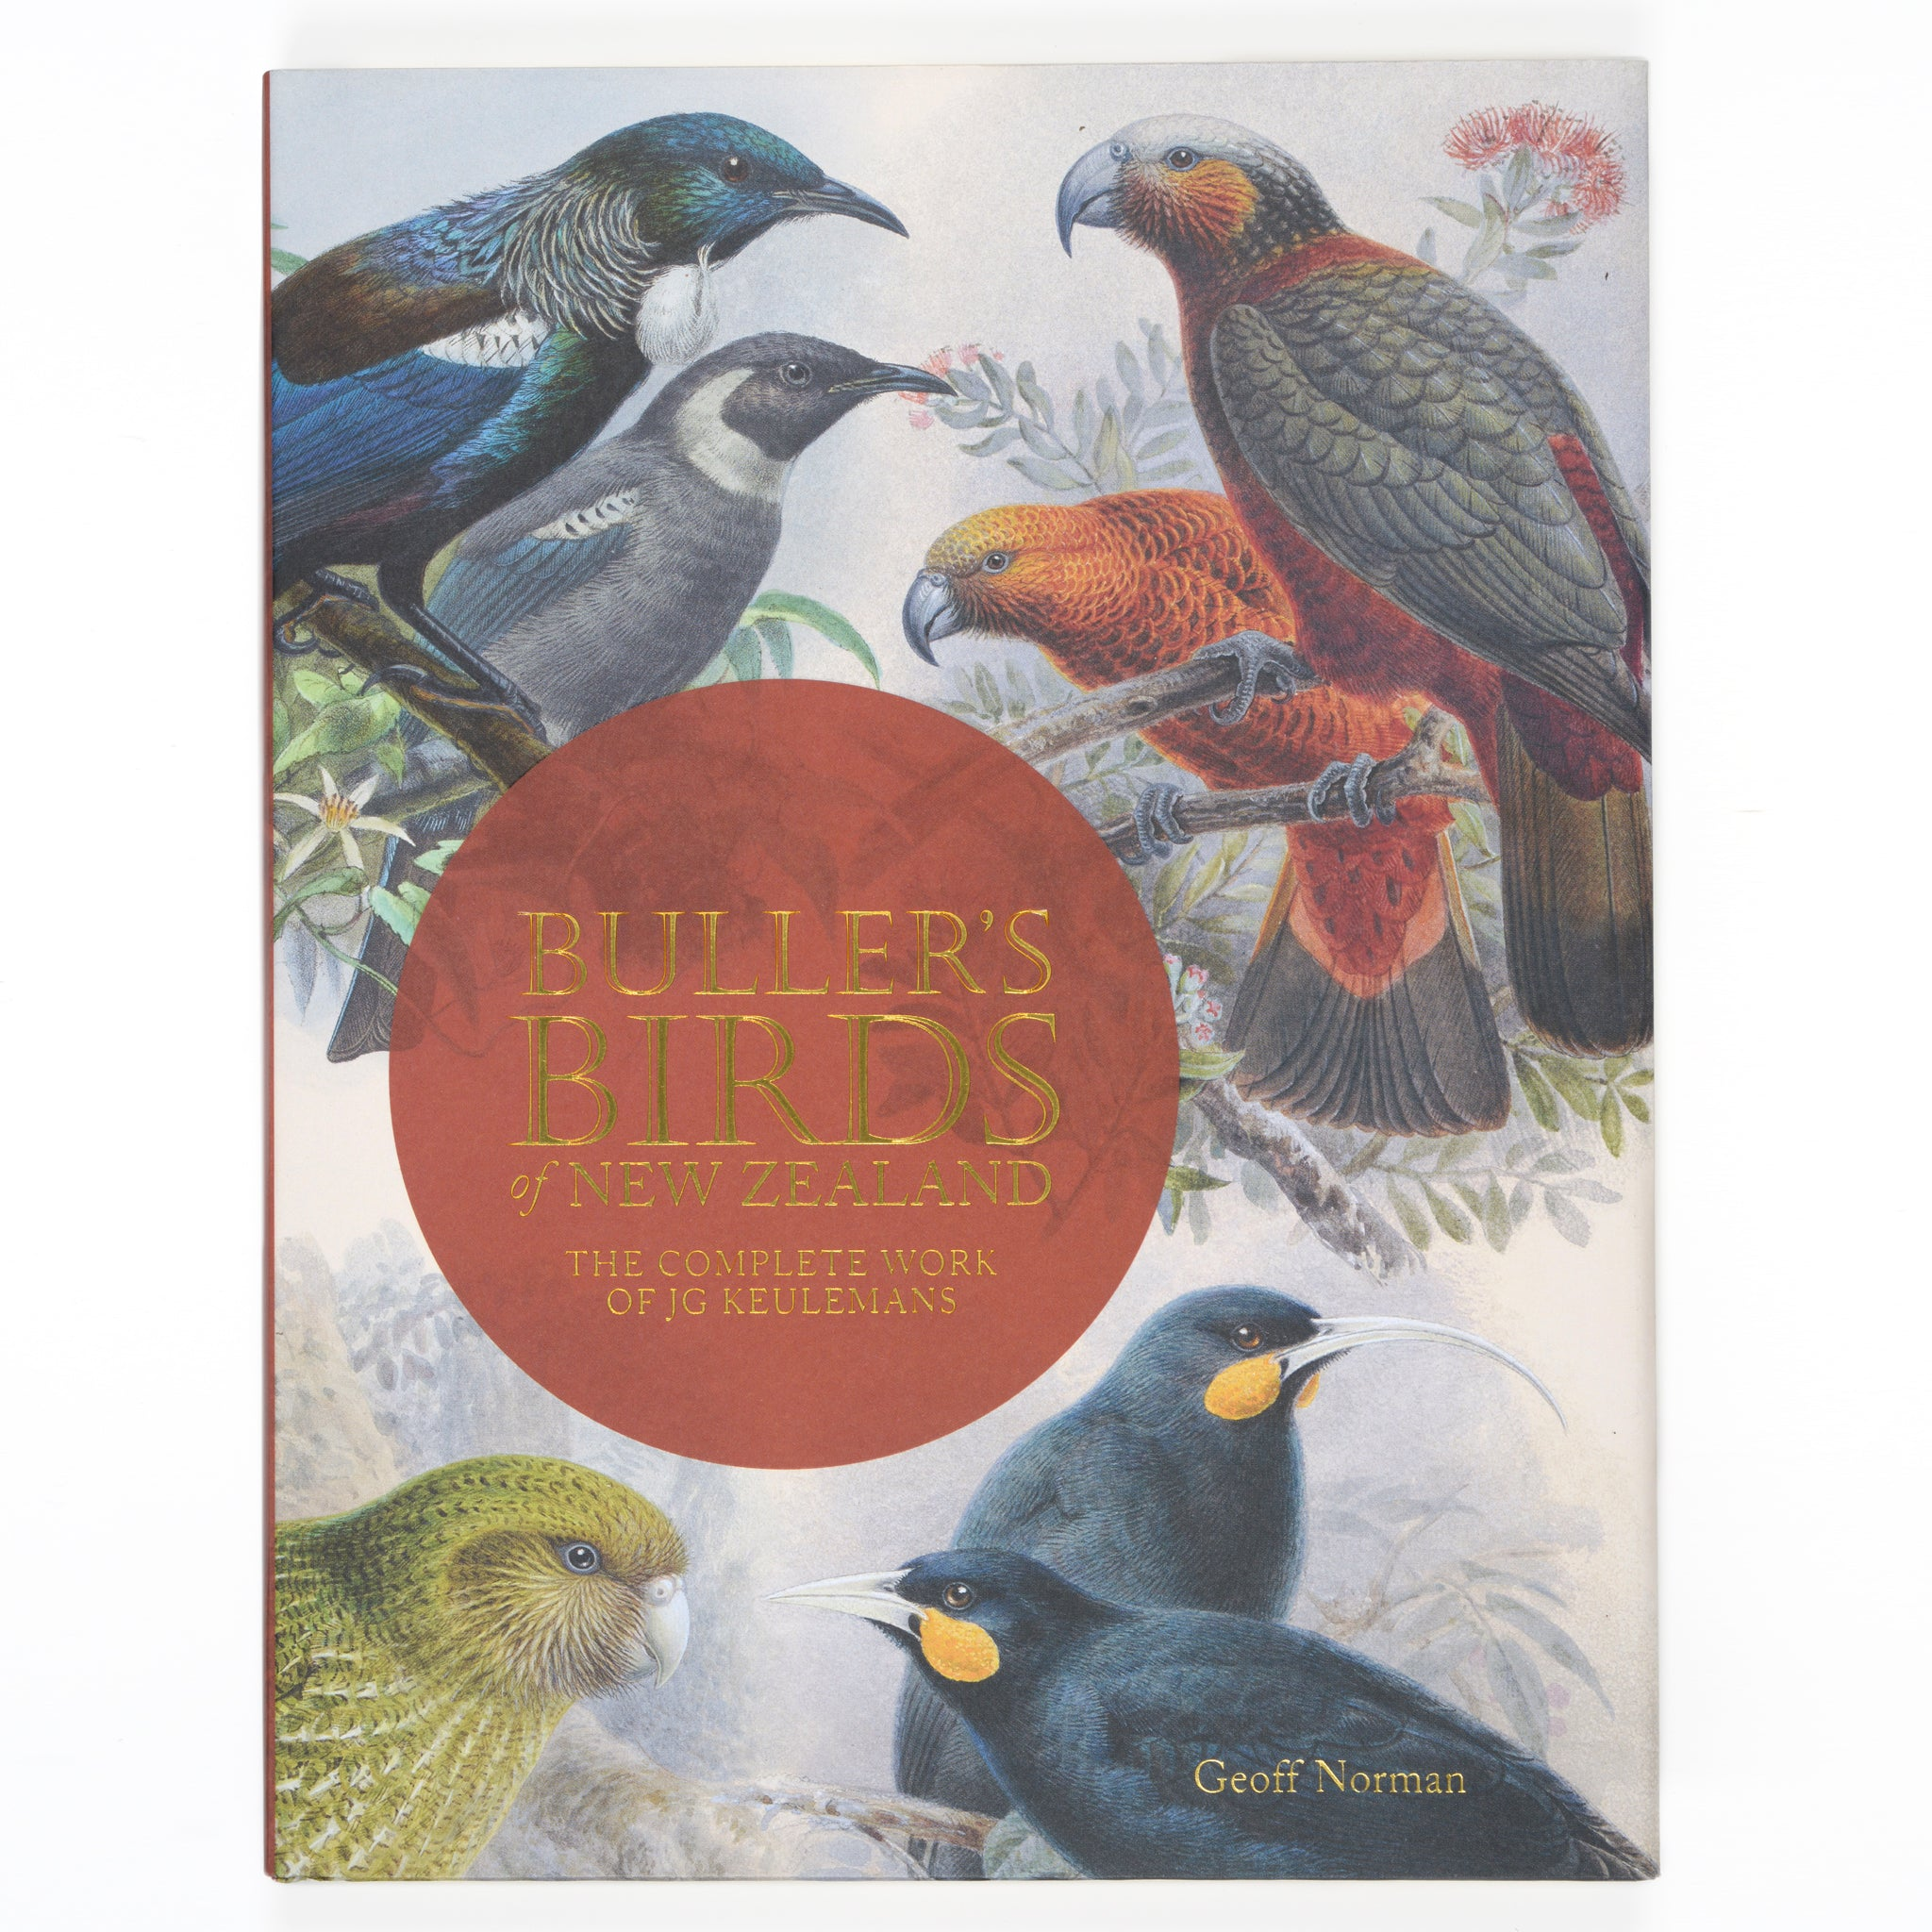 Buller's Birds of New Zealand Image